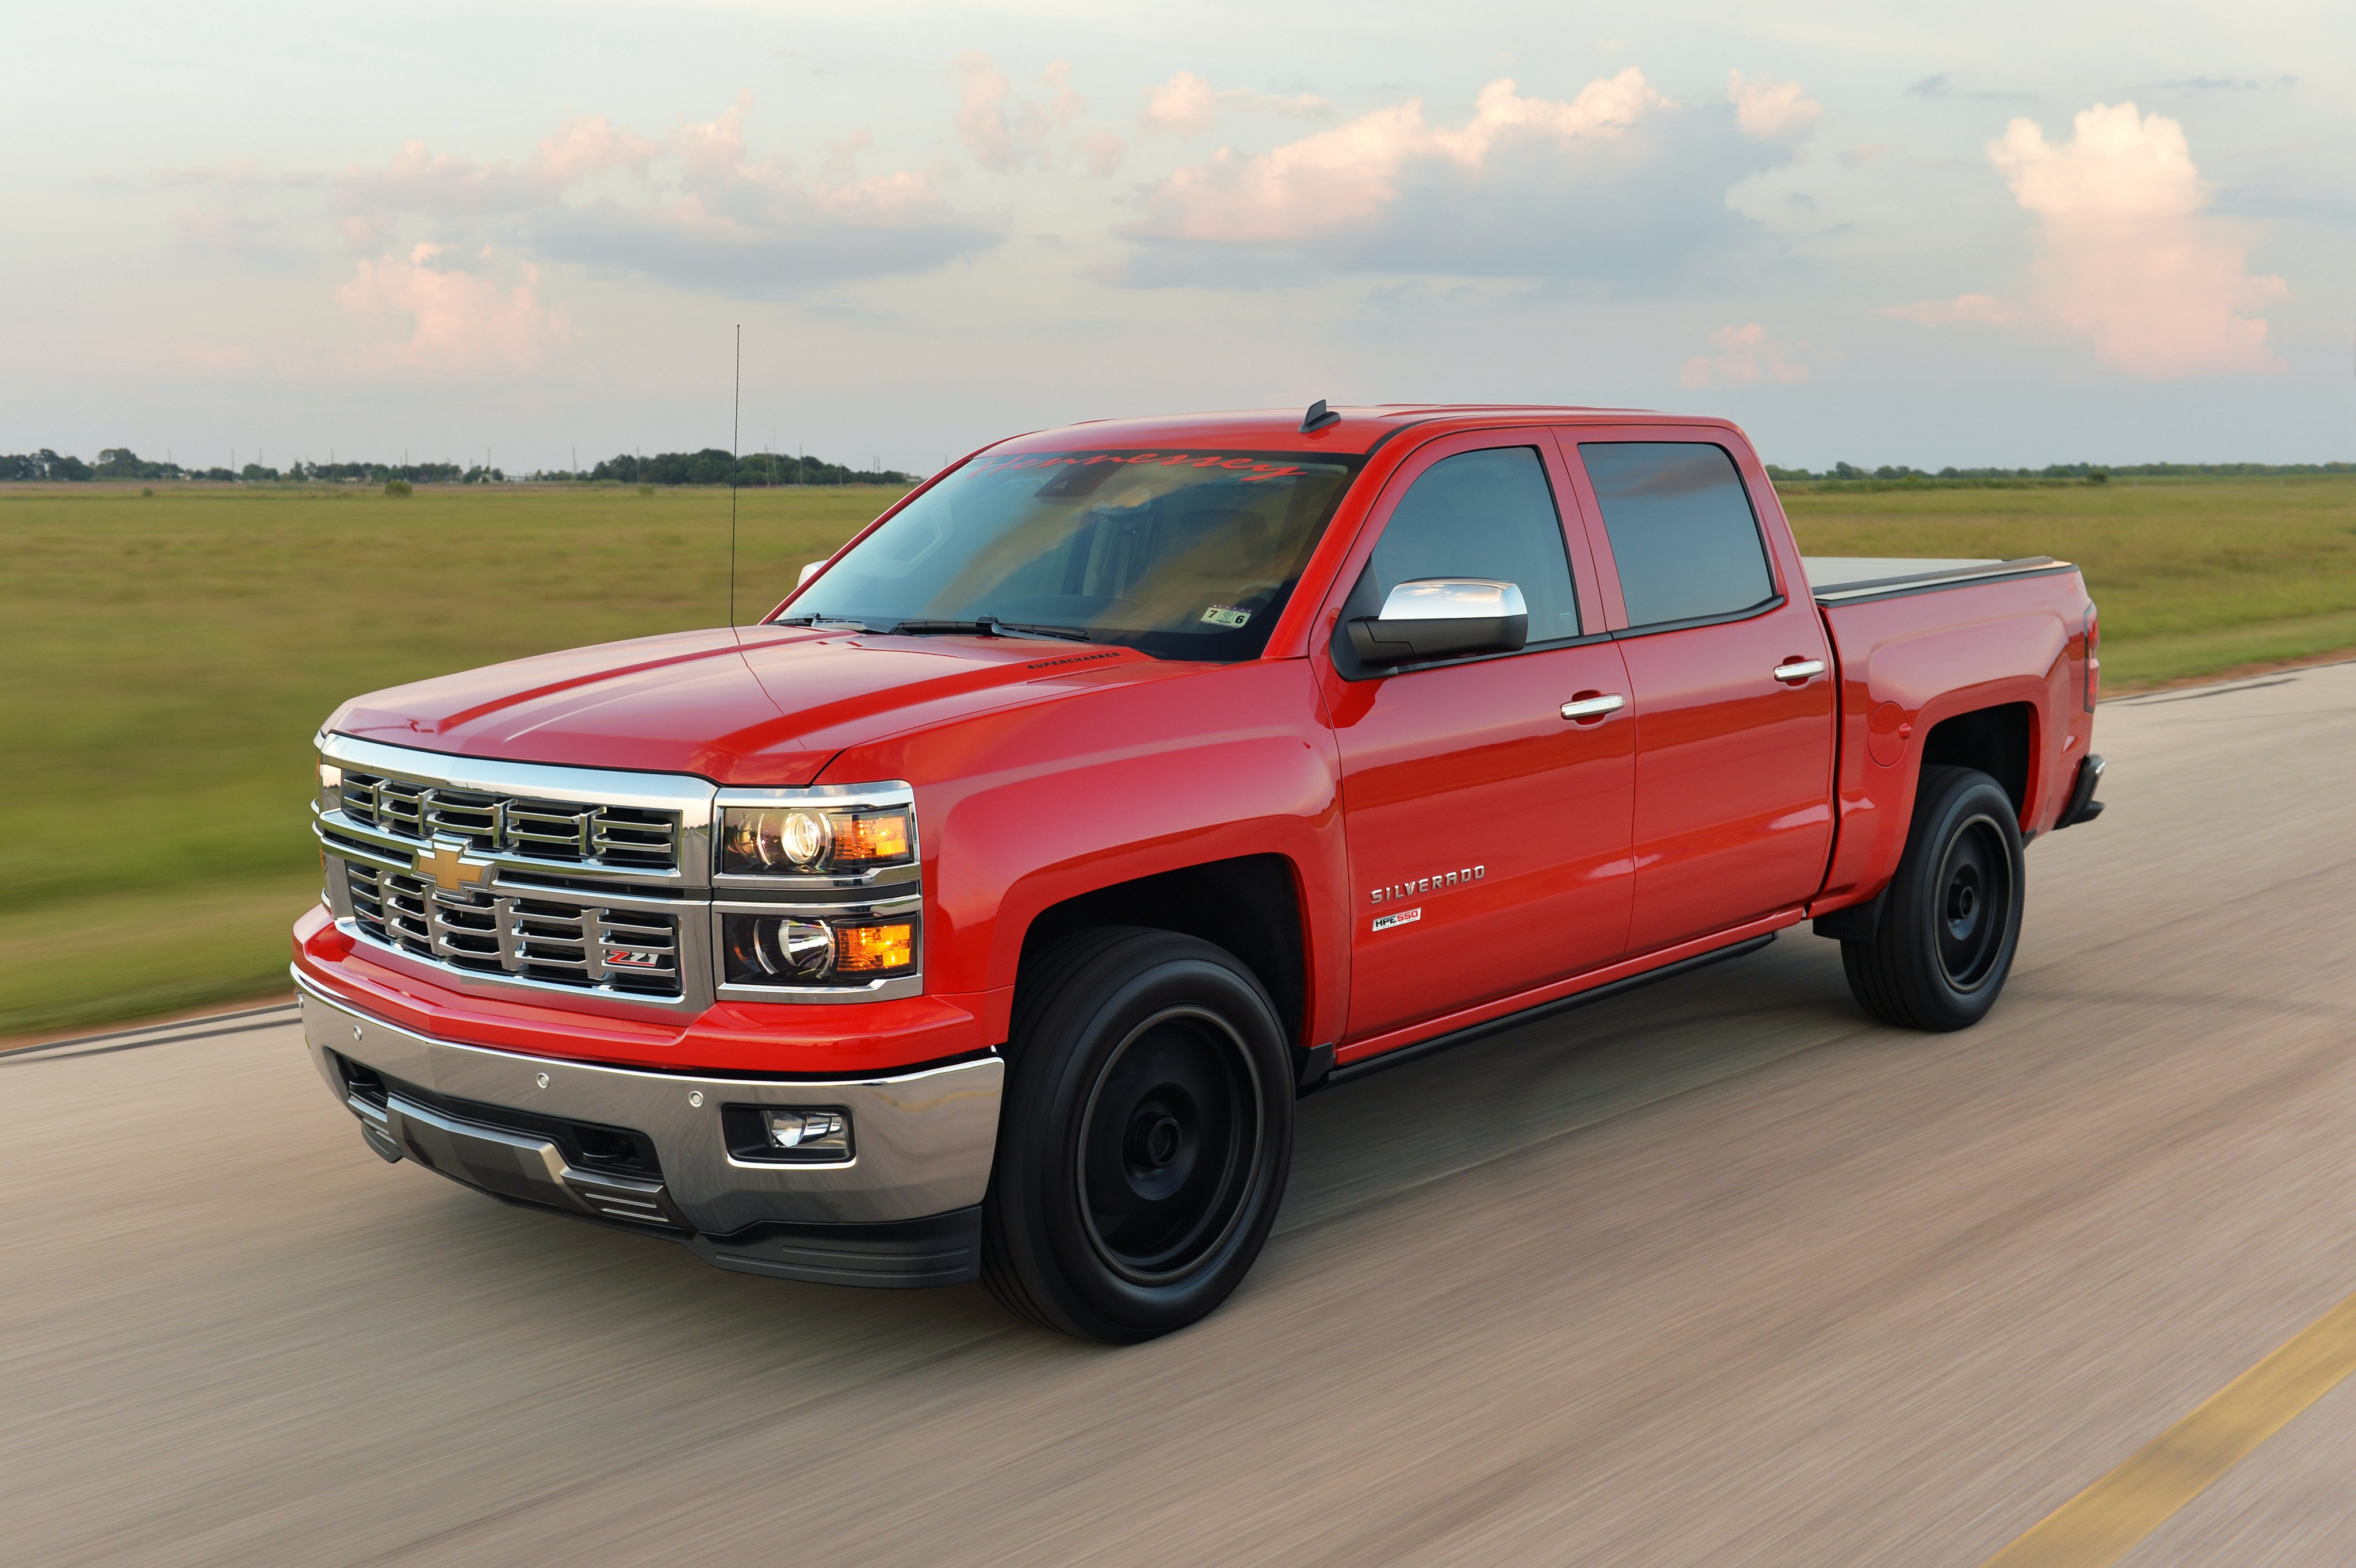 2015 hennessey chevrolet silverado z71 hpe550 pickup muscle tuning wallpaper 4096x2726 461867 wallpaperup